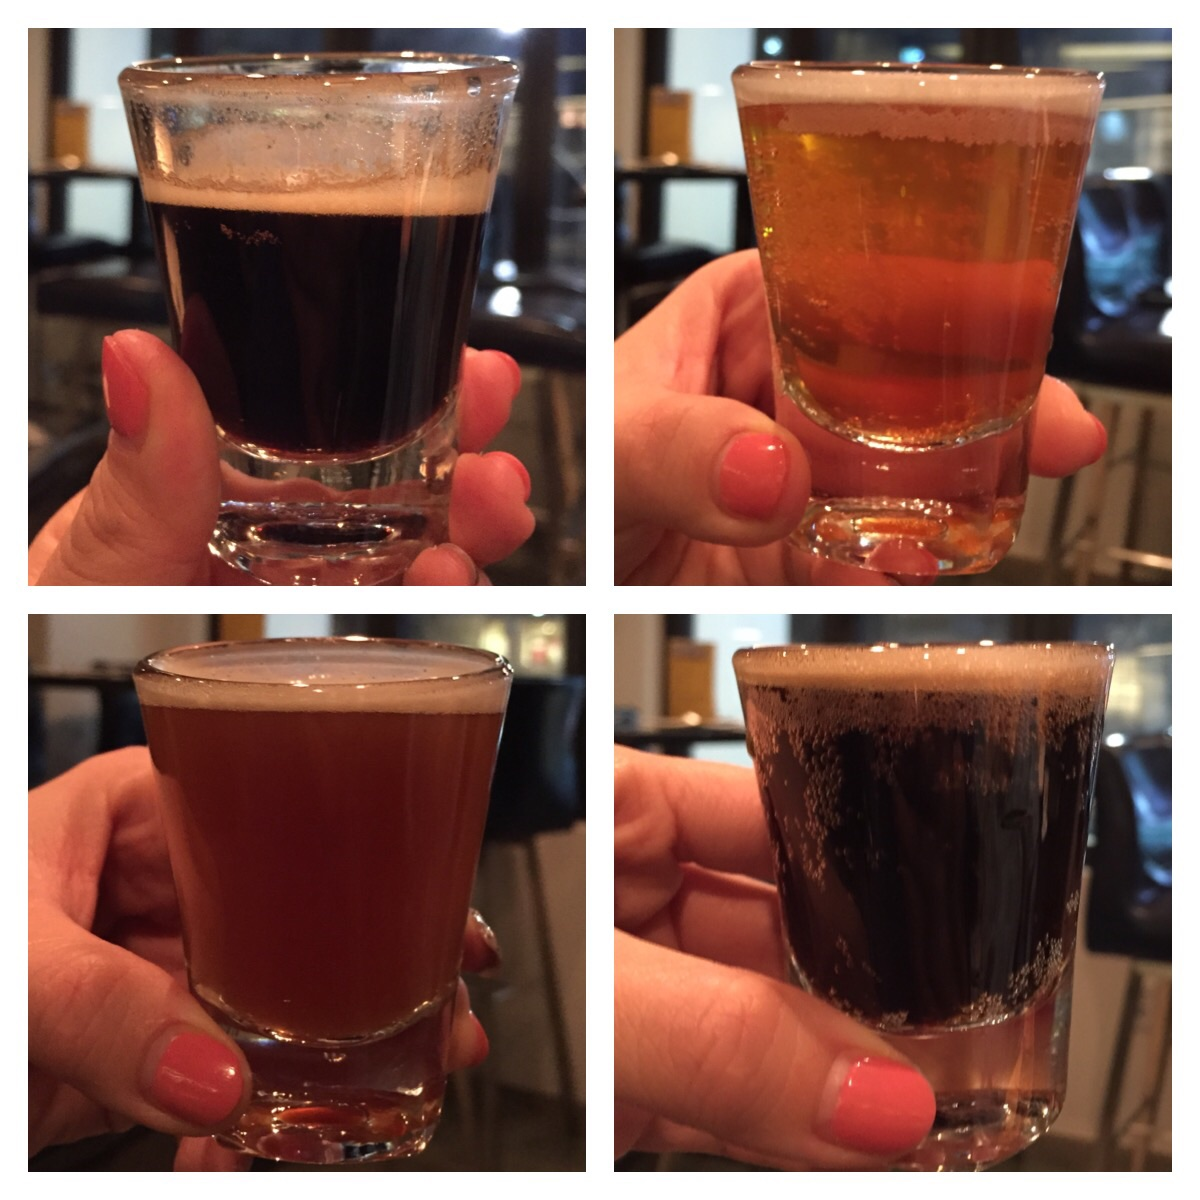 """We tastedall of them, but the ones that stood out to me were the COFFEE AND VANILLA STOUT (top left) - """"Light bodied for easy drinking using Columbia coffee whole beans and whole vanilla beans"""". If you like vanilla coffee in the AM, this is the beer for you in the PM! So creamy and smooth - it literally tastes like a nice dark coffee with sweet vanilla tones!"""